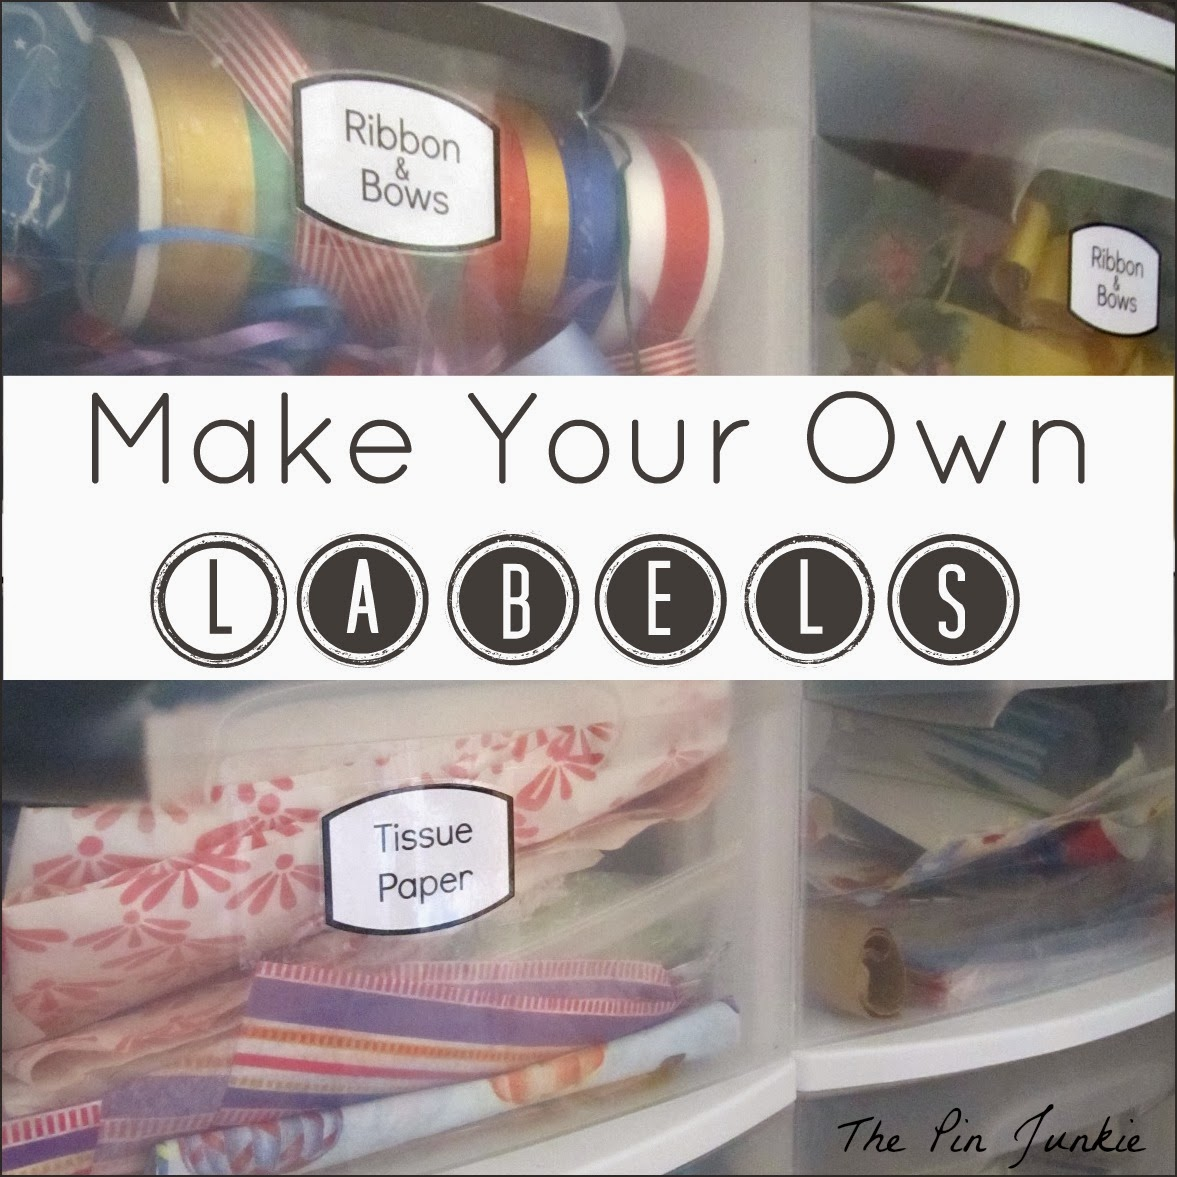 Make your own labels for How to print your own labels